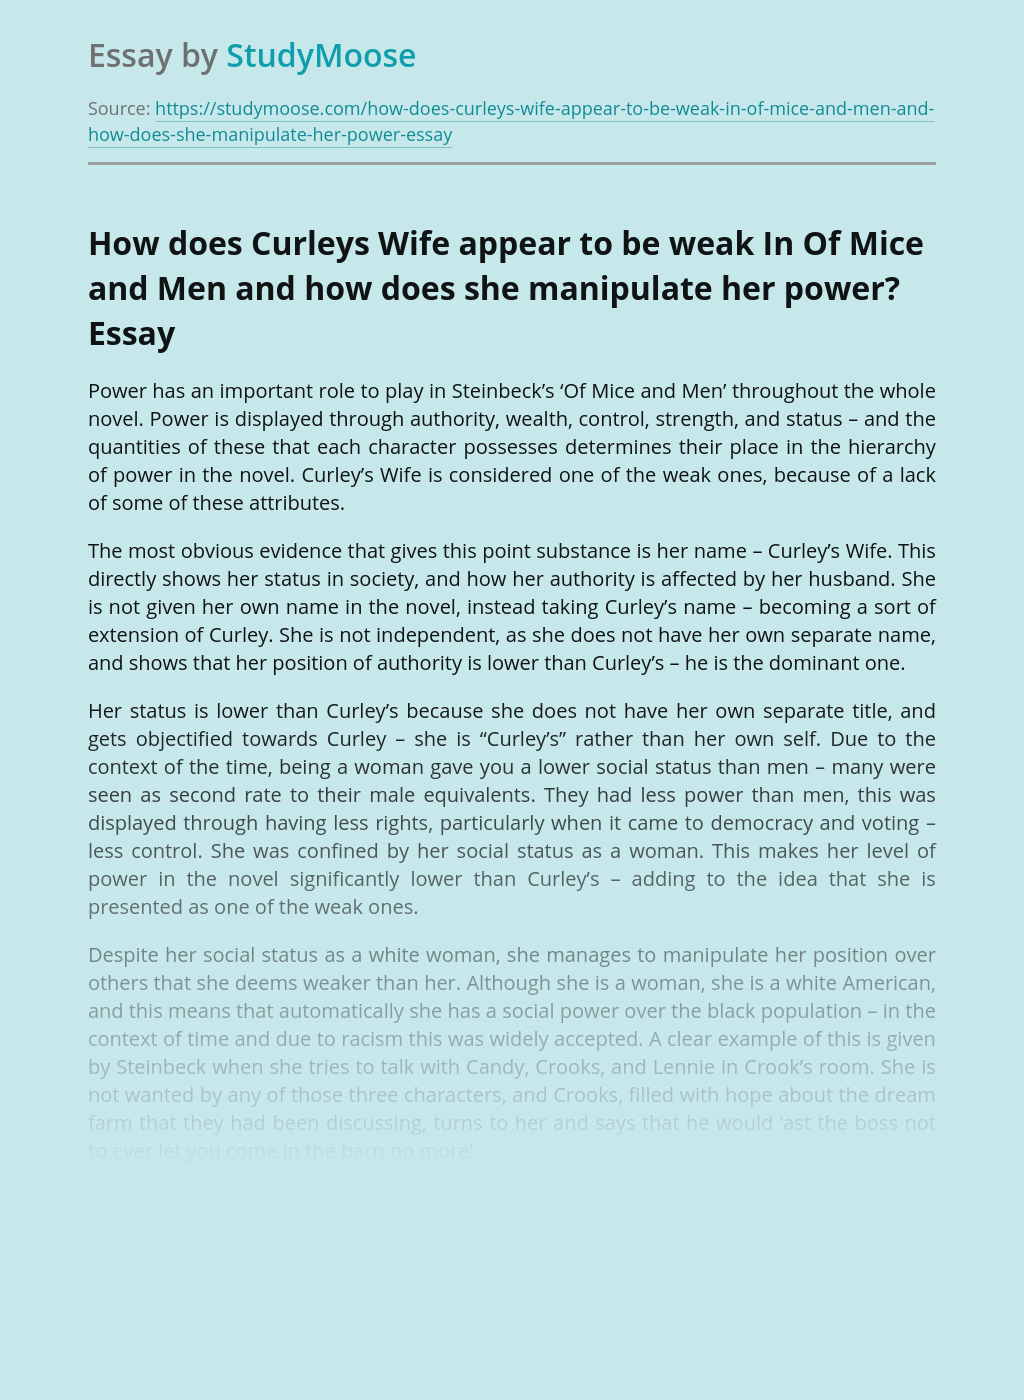 How does Curleys Wife appear to be weak In Of Mice and Men and how does she manipulate her power?